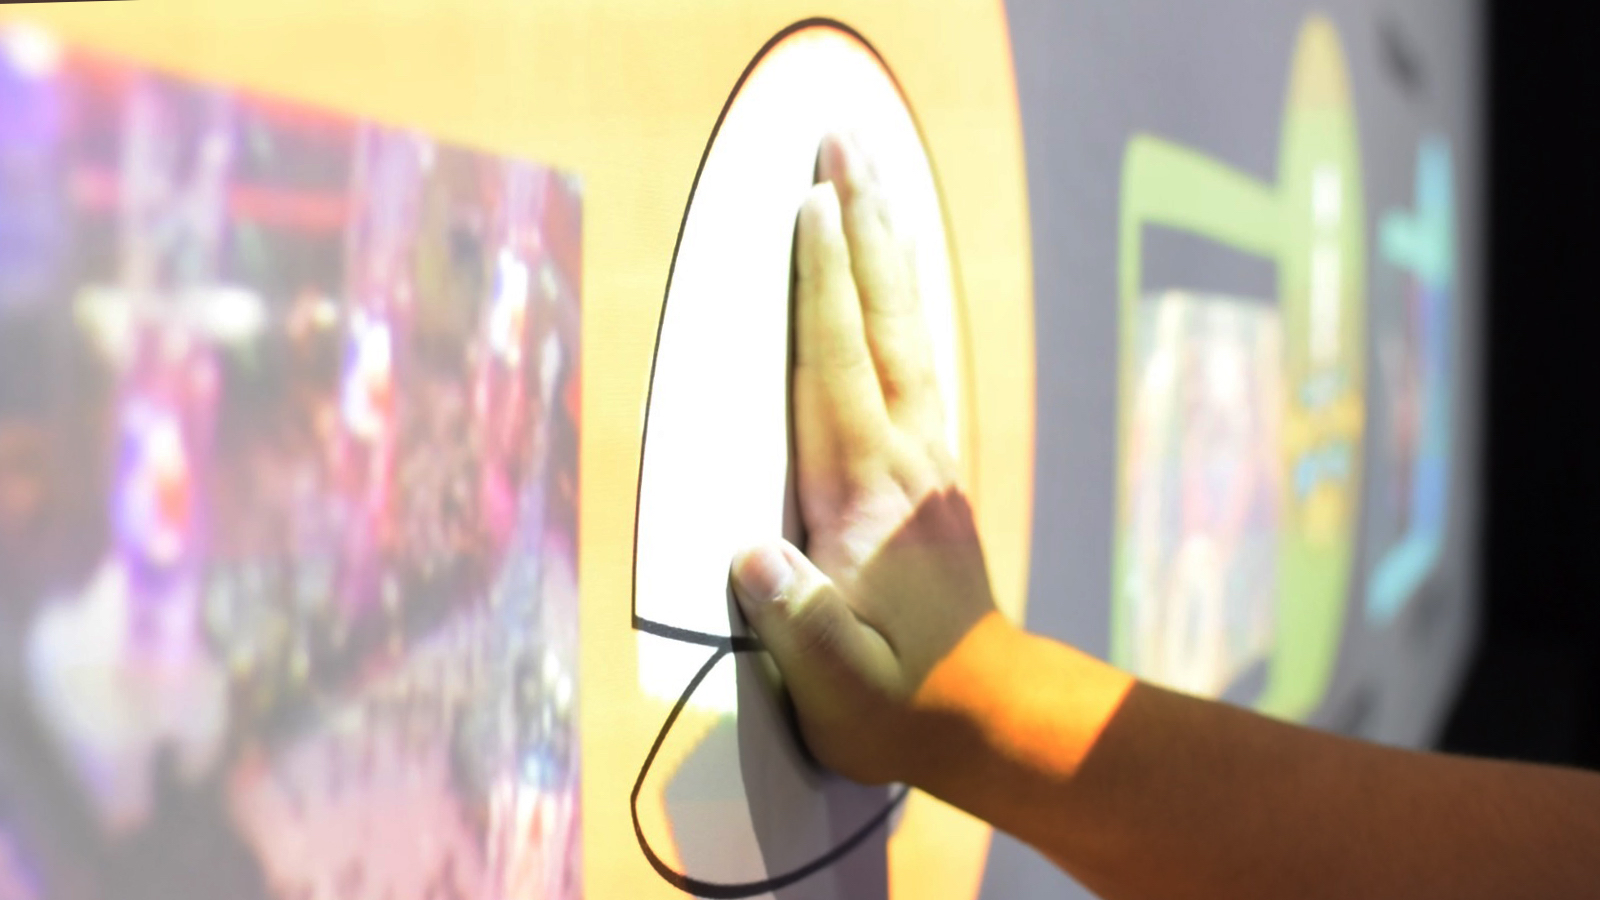 Digital Jalebi Touch Wall Projection